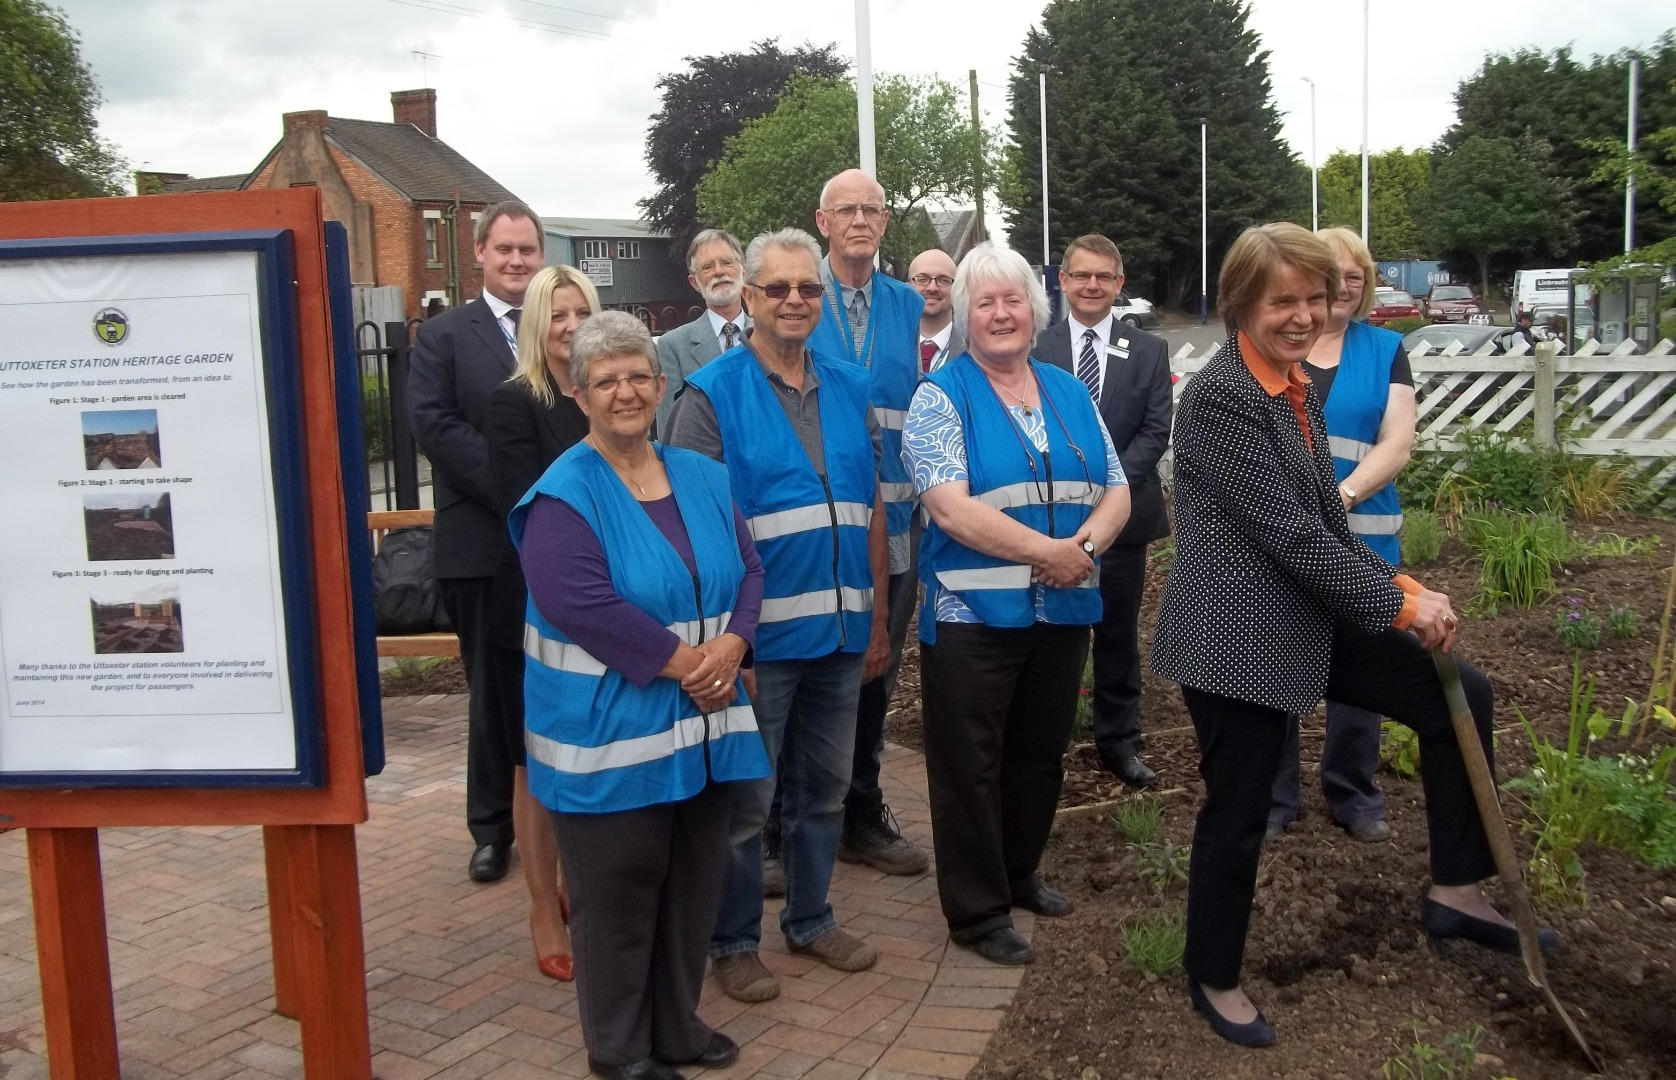 Anna Walker, ORR, Uttoxeter station volunteers and partners at the opening of Station Heritage Garden